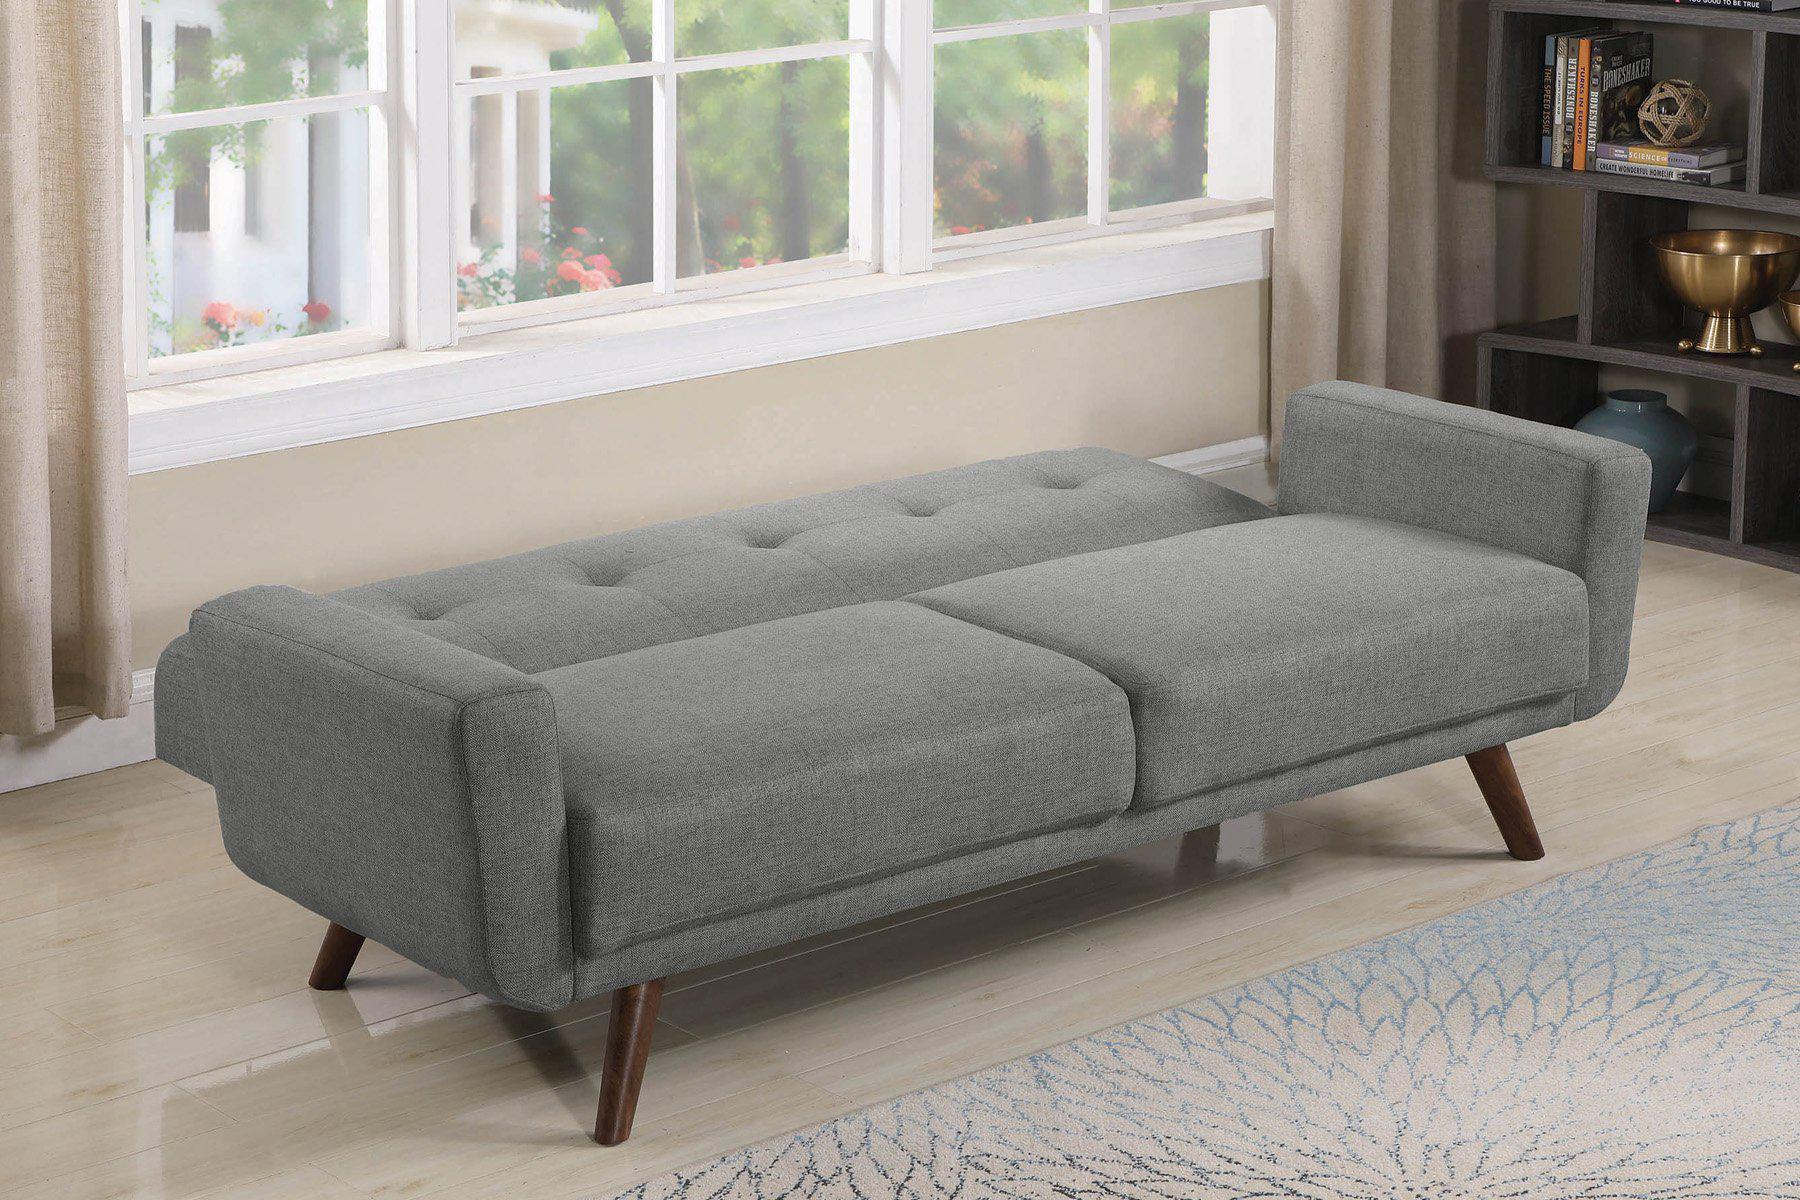 SOFA BED-Jennifer Furniture